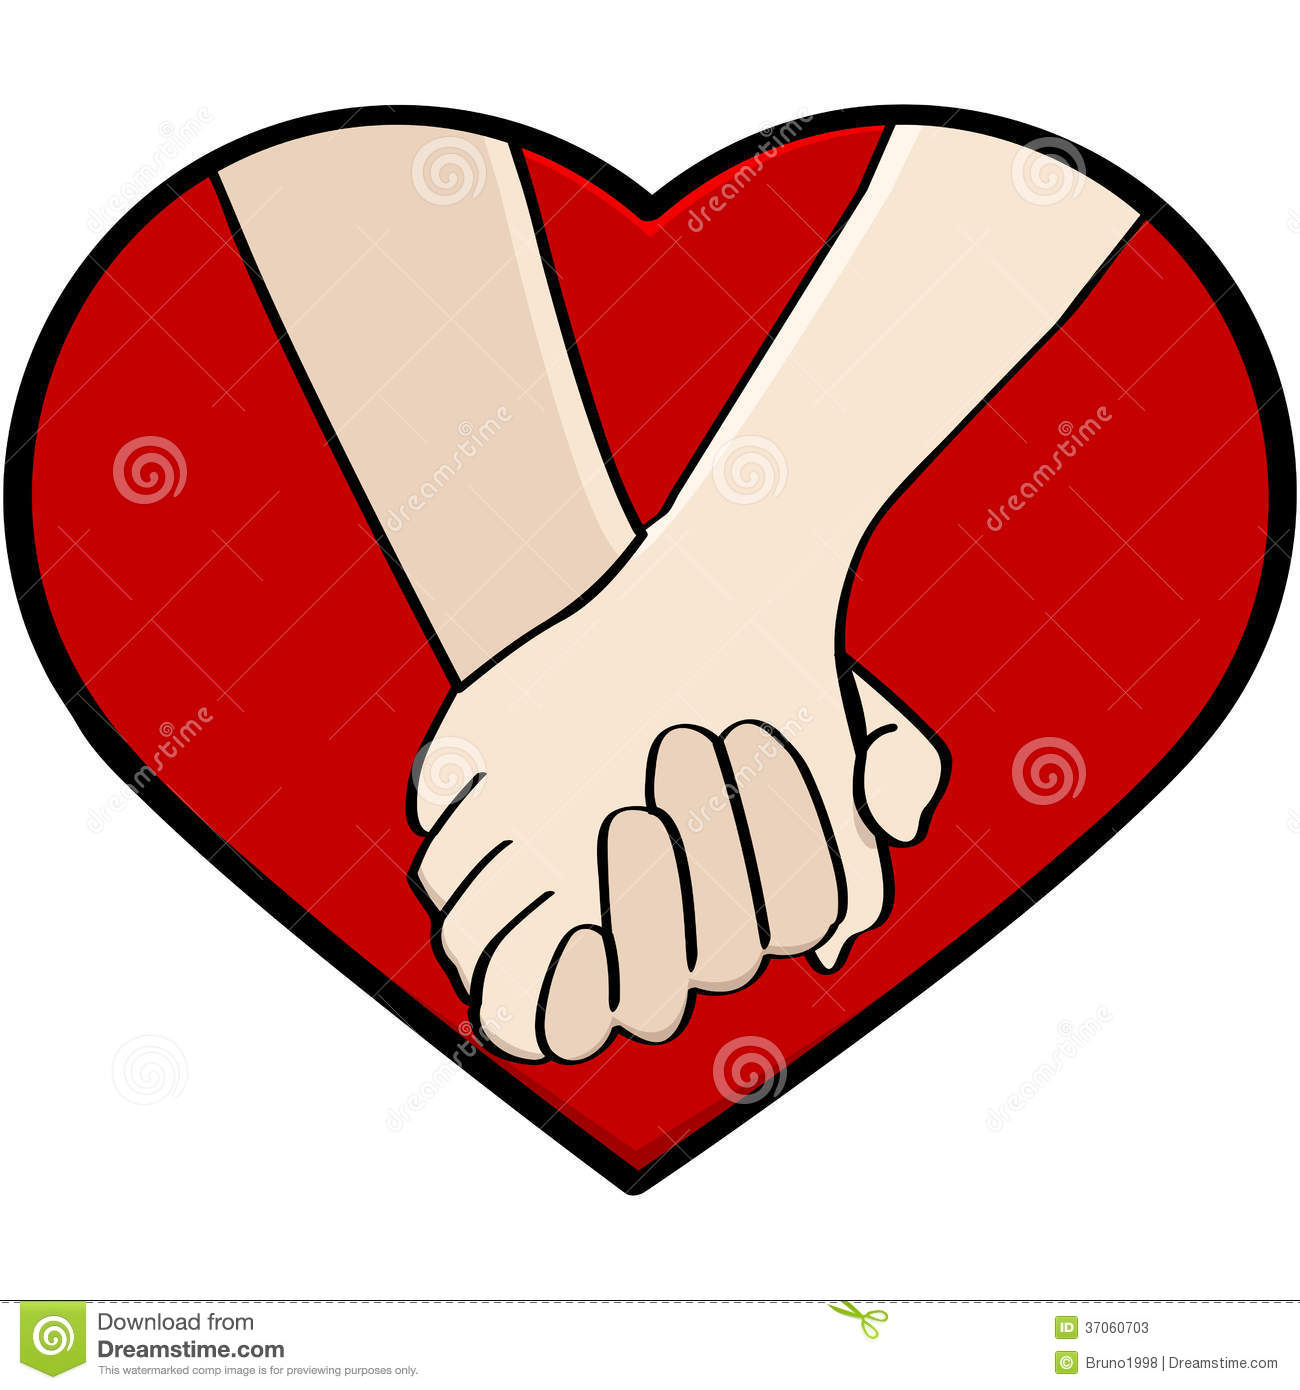 Cartoon illustration showing a close up of a couple holding hands framed by a heart